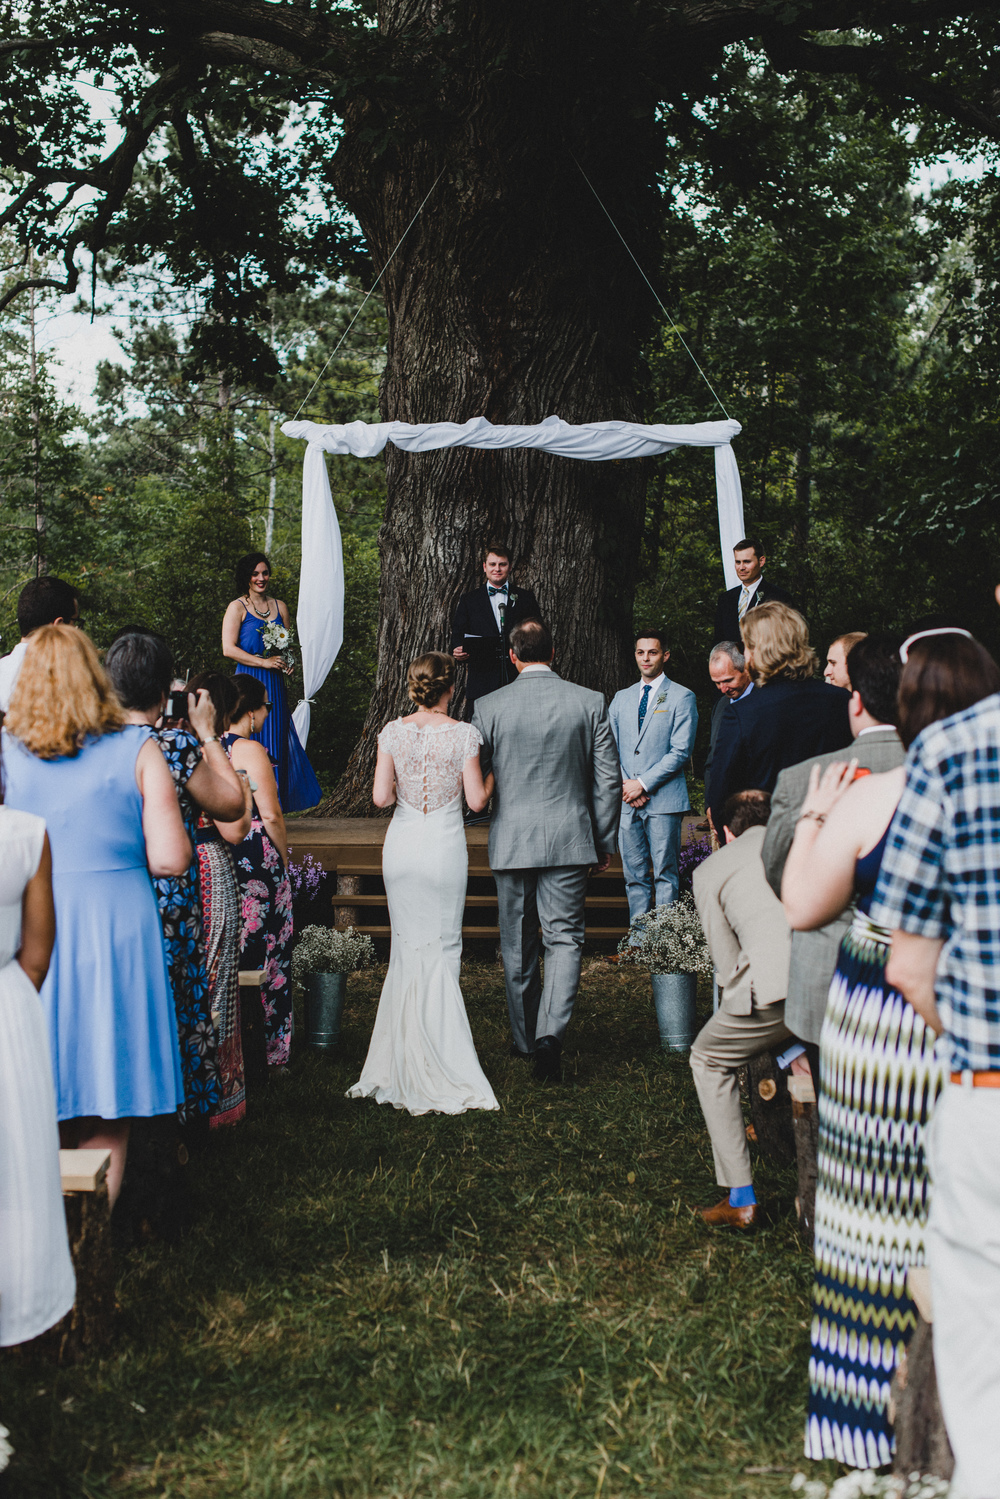 Intimate-Backyard-Farmhouse-Ohio-Wedding-Andi+Ben_Mallory+Justin-Photographers-149.JPG